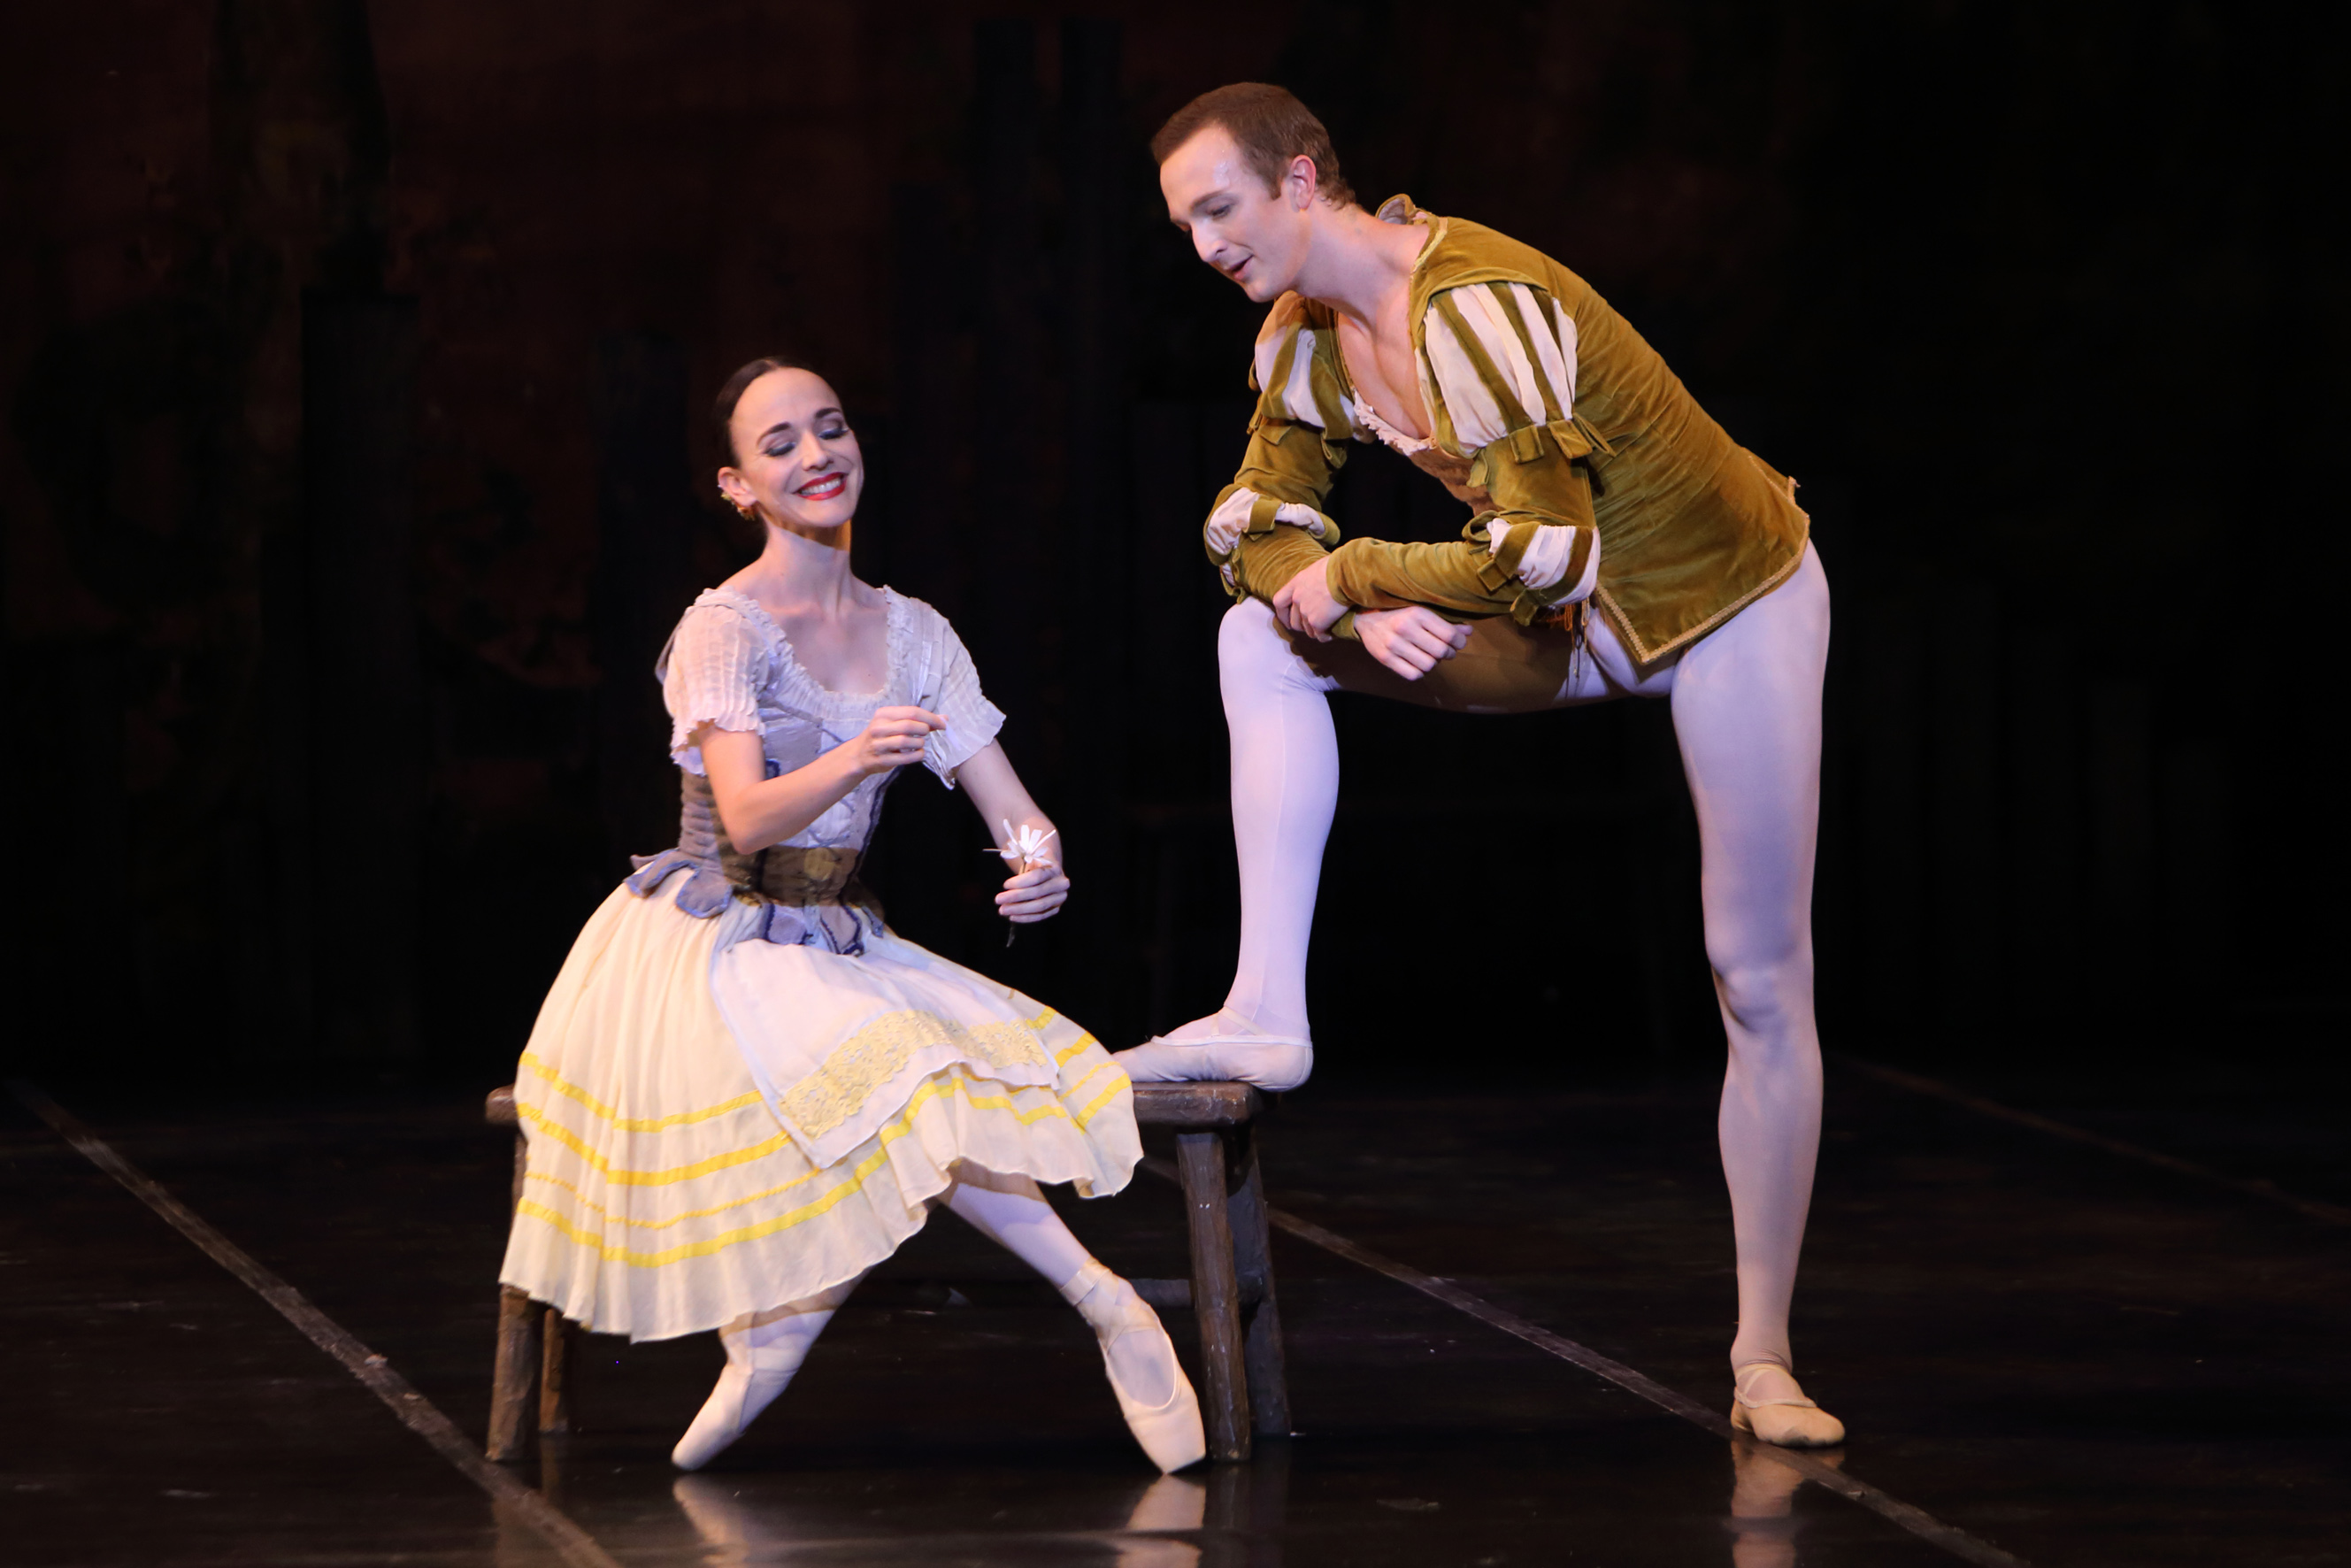 Laura Bosenberg with Thomas Thorne in Giselle